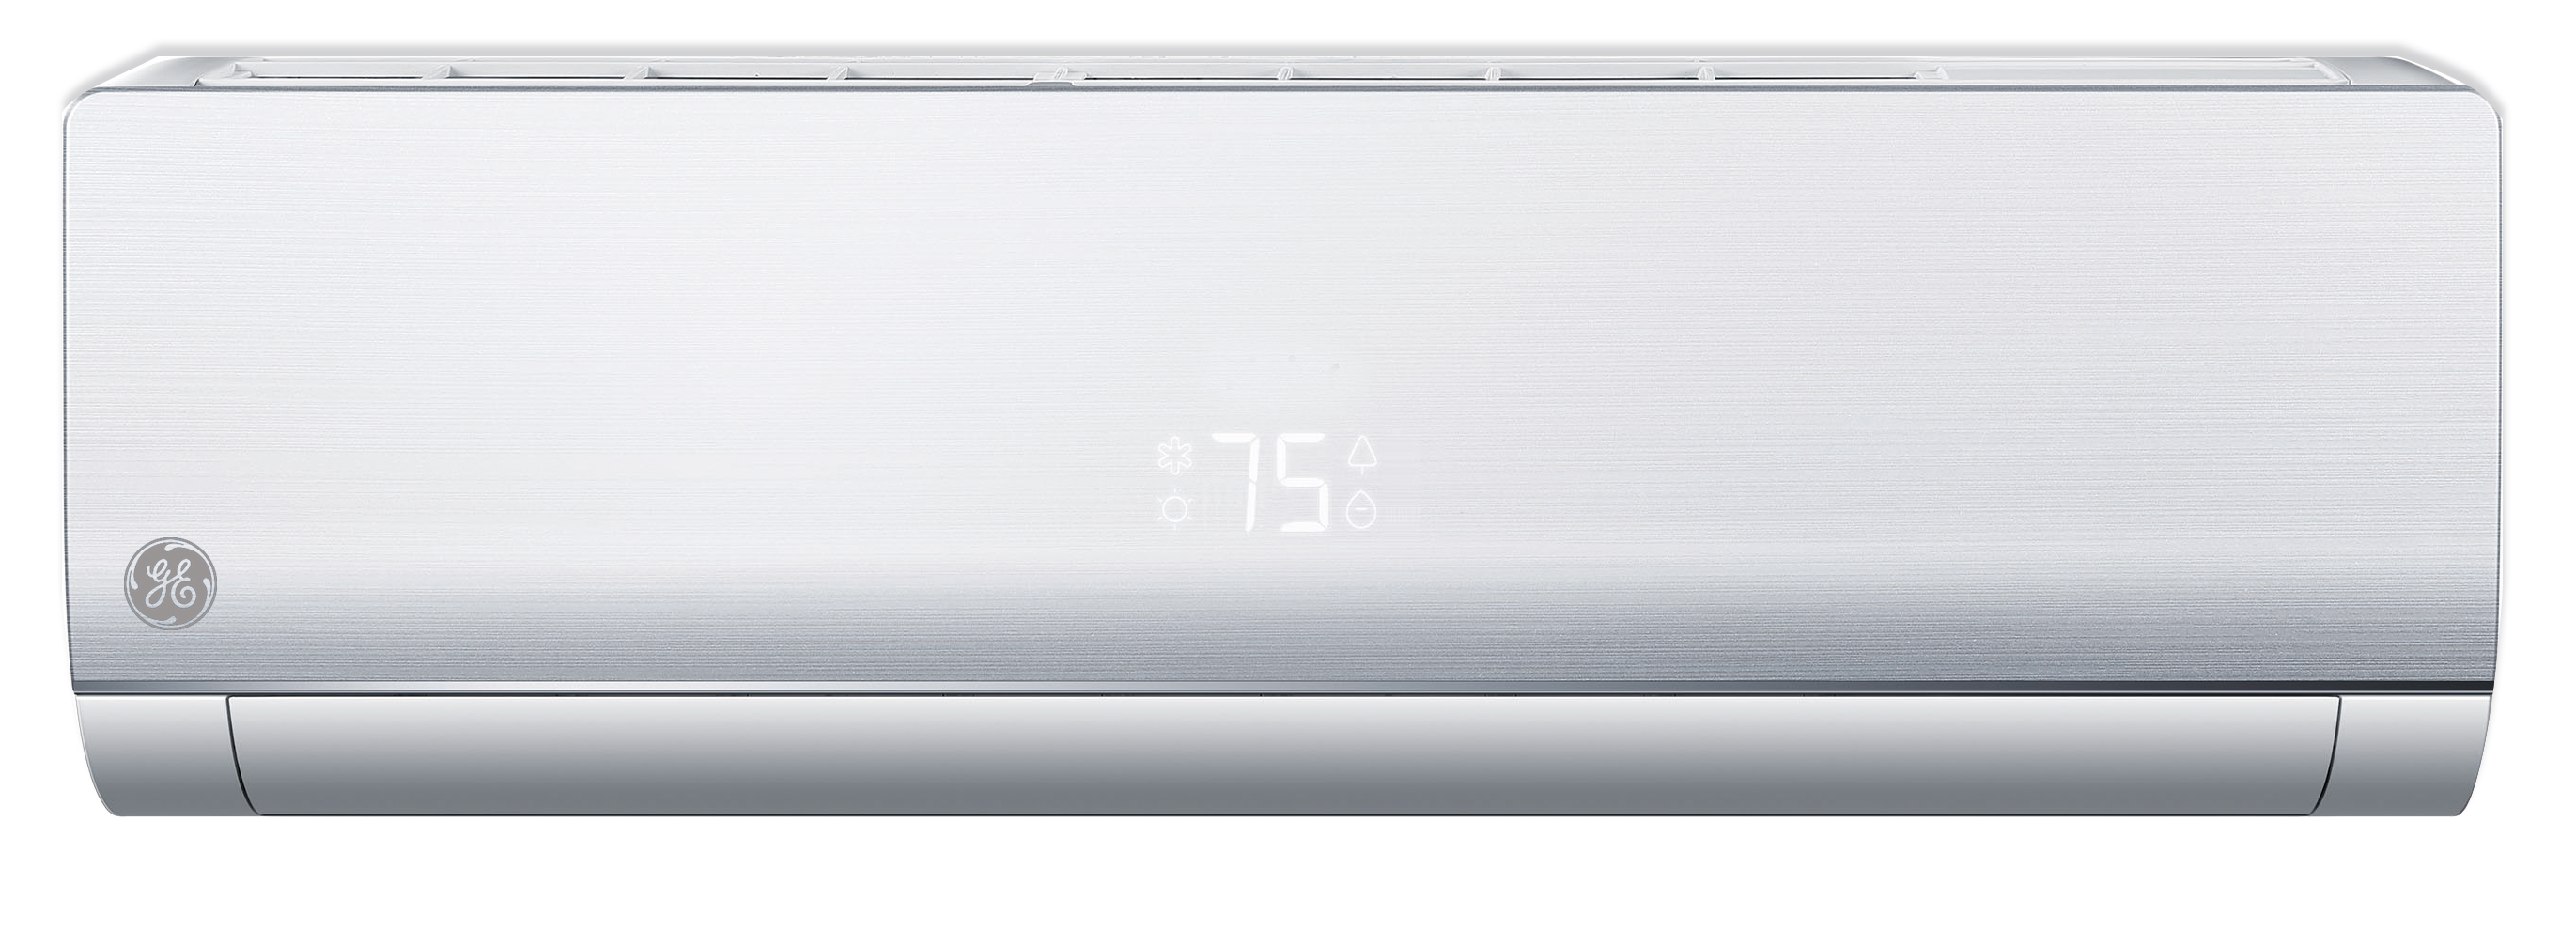 GE ASYW18URDWA 18000 BTU Endure Multi Zone Indoor Wall Unit - Heat and Cool - 208/230V